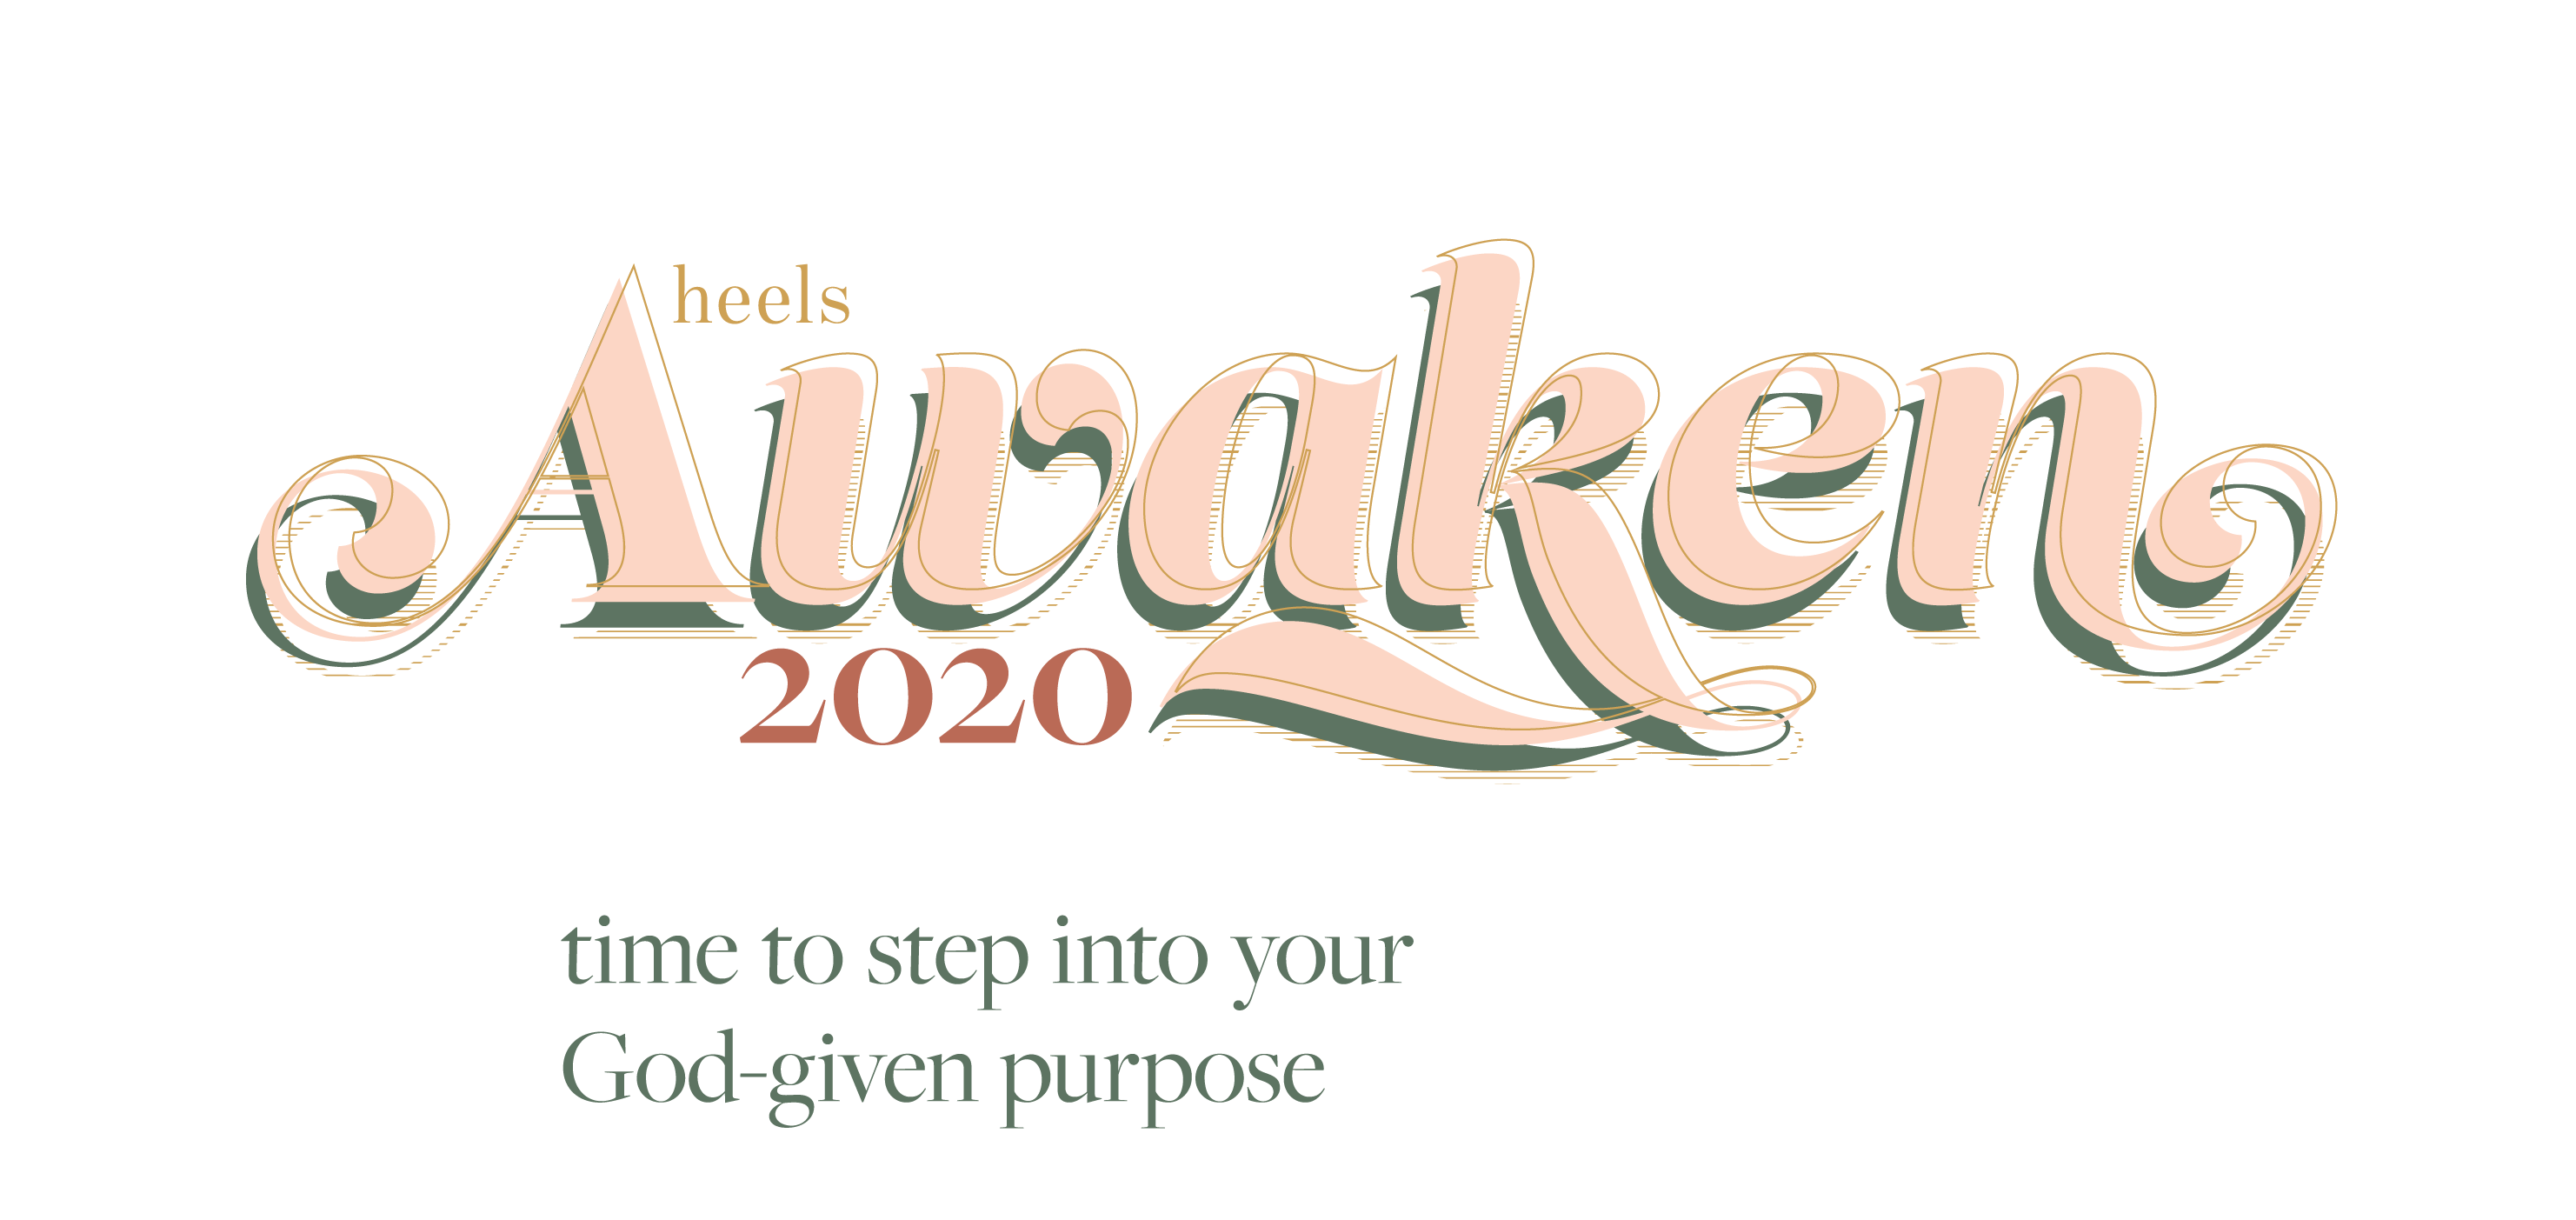 Awaken 2020: Time to Step Into Your God-Given Purpose